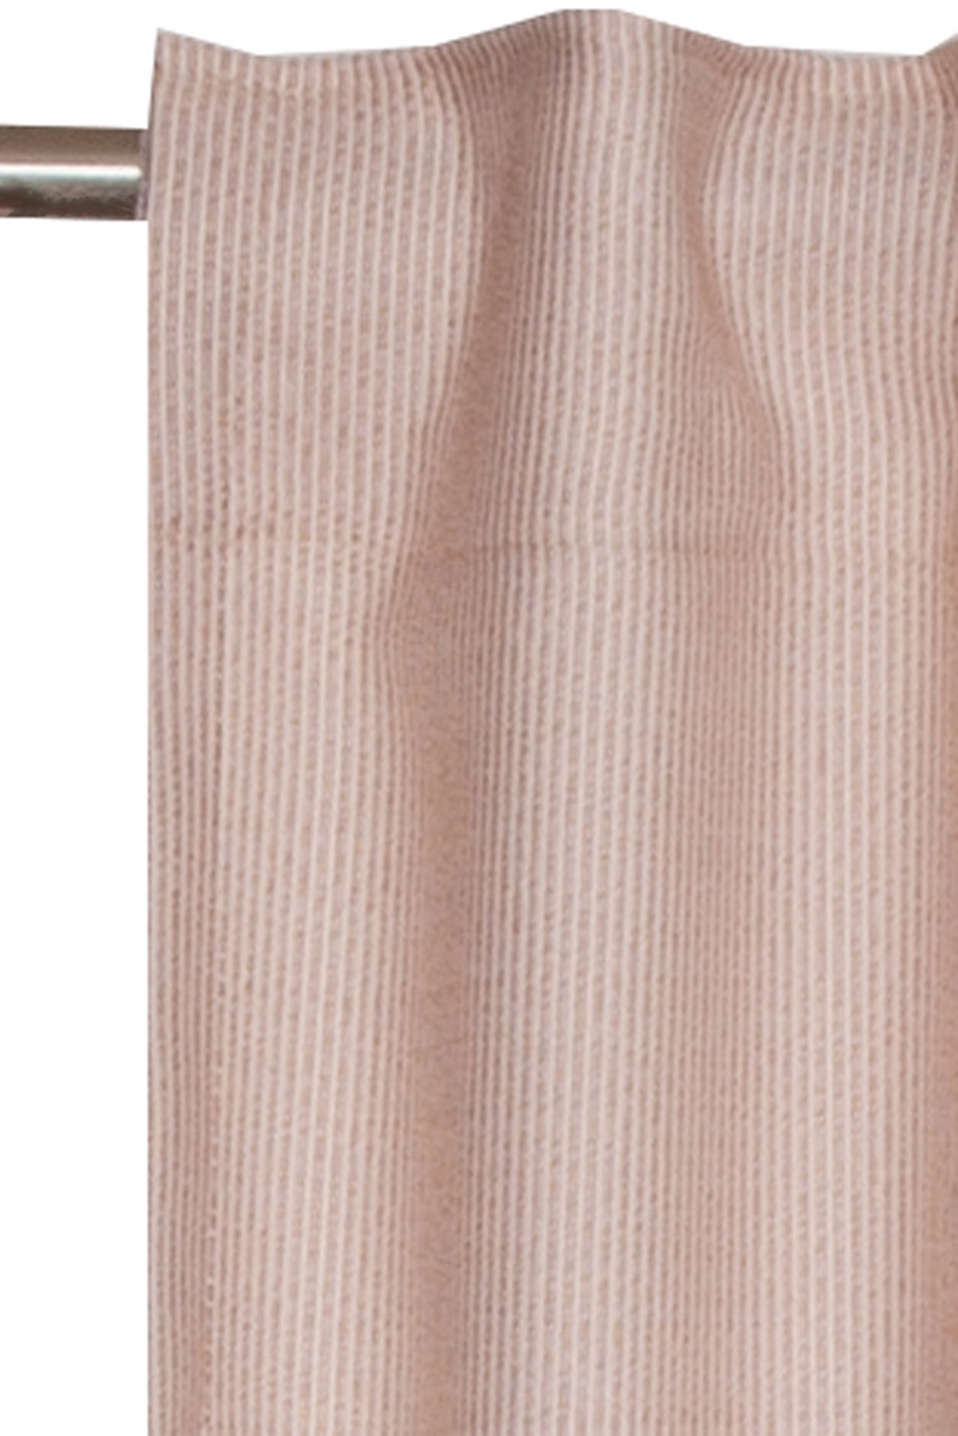 Curtain with woven stripes, ROSE, detail image number 1